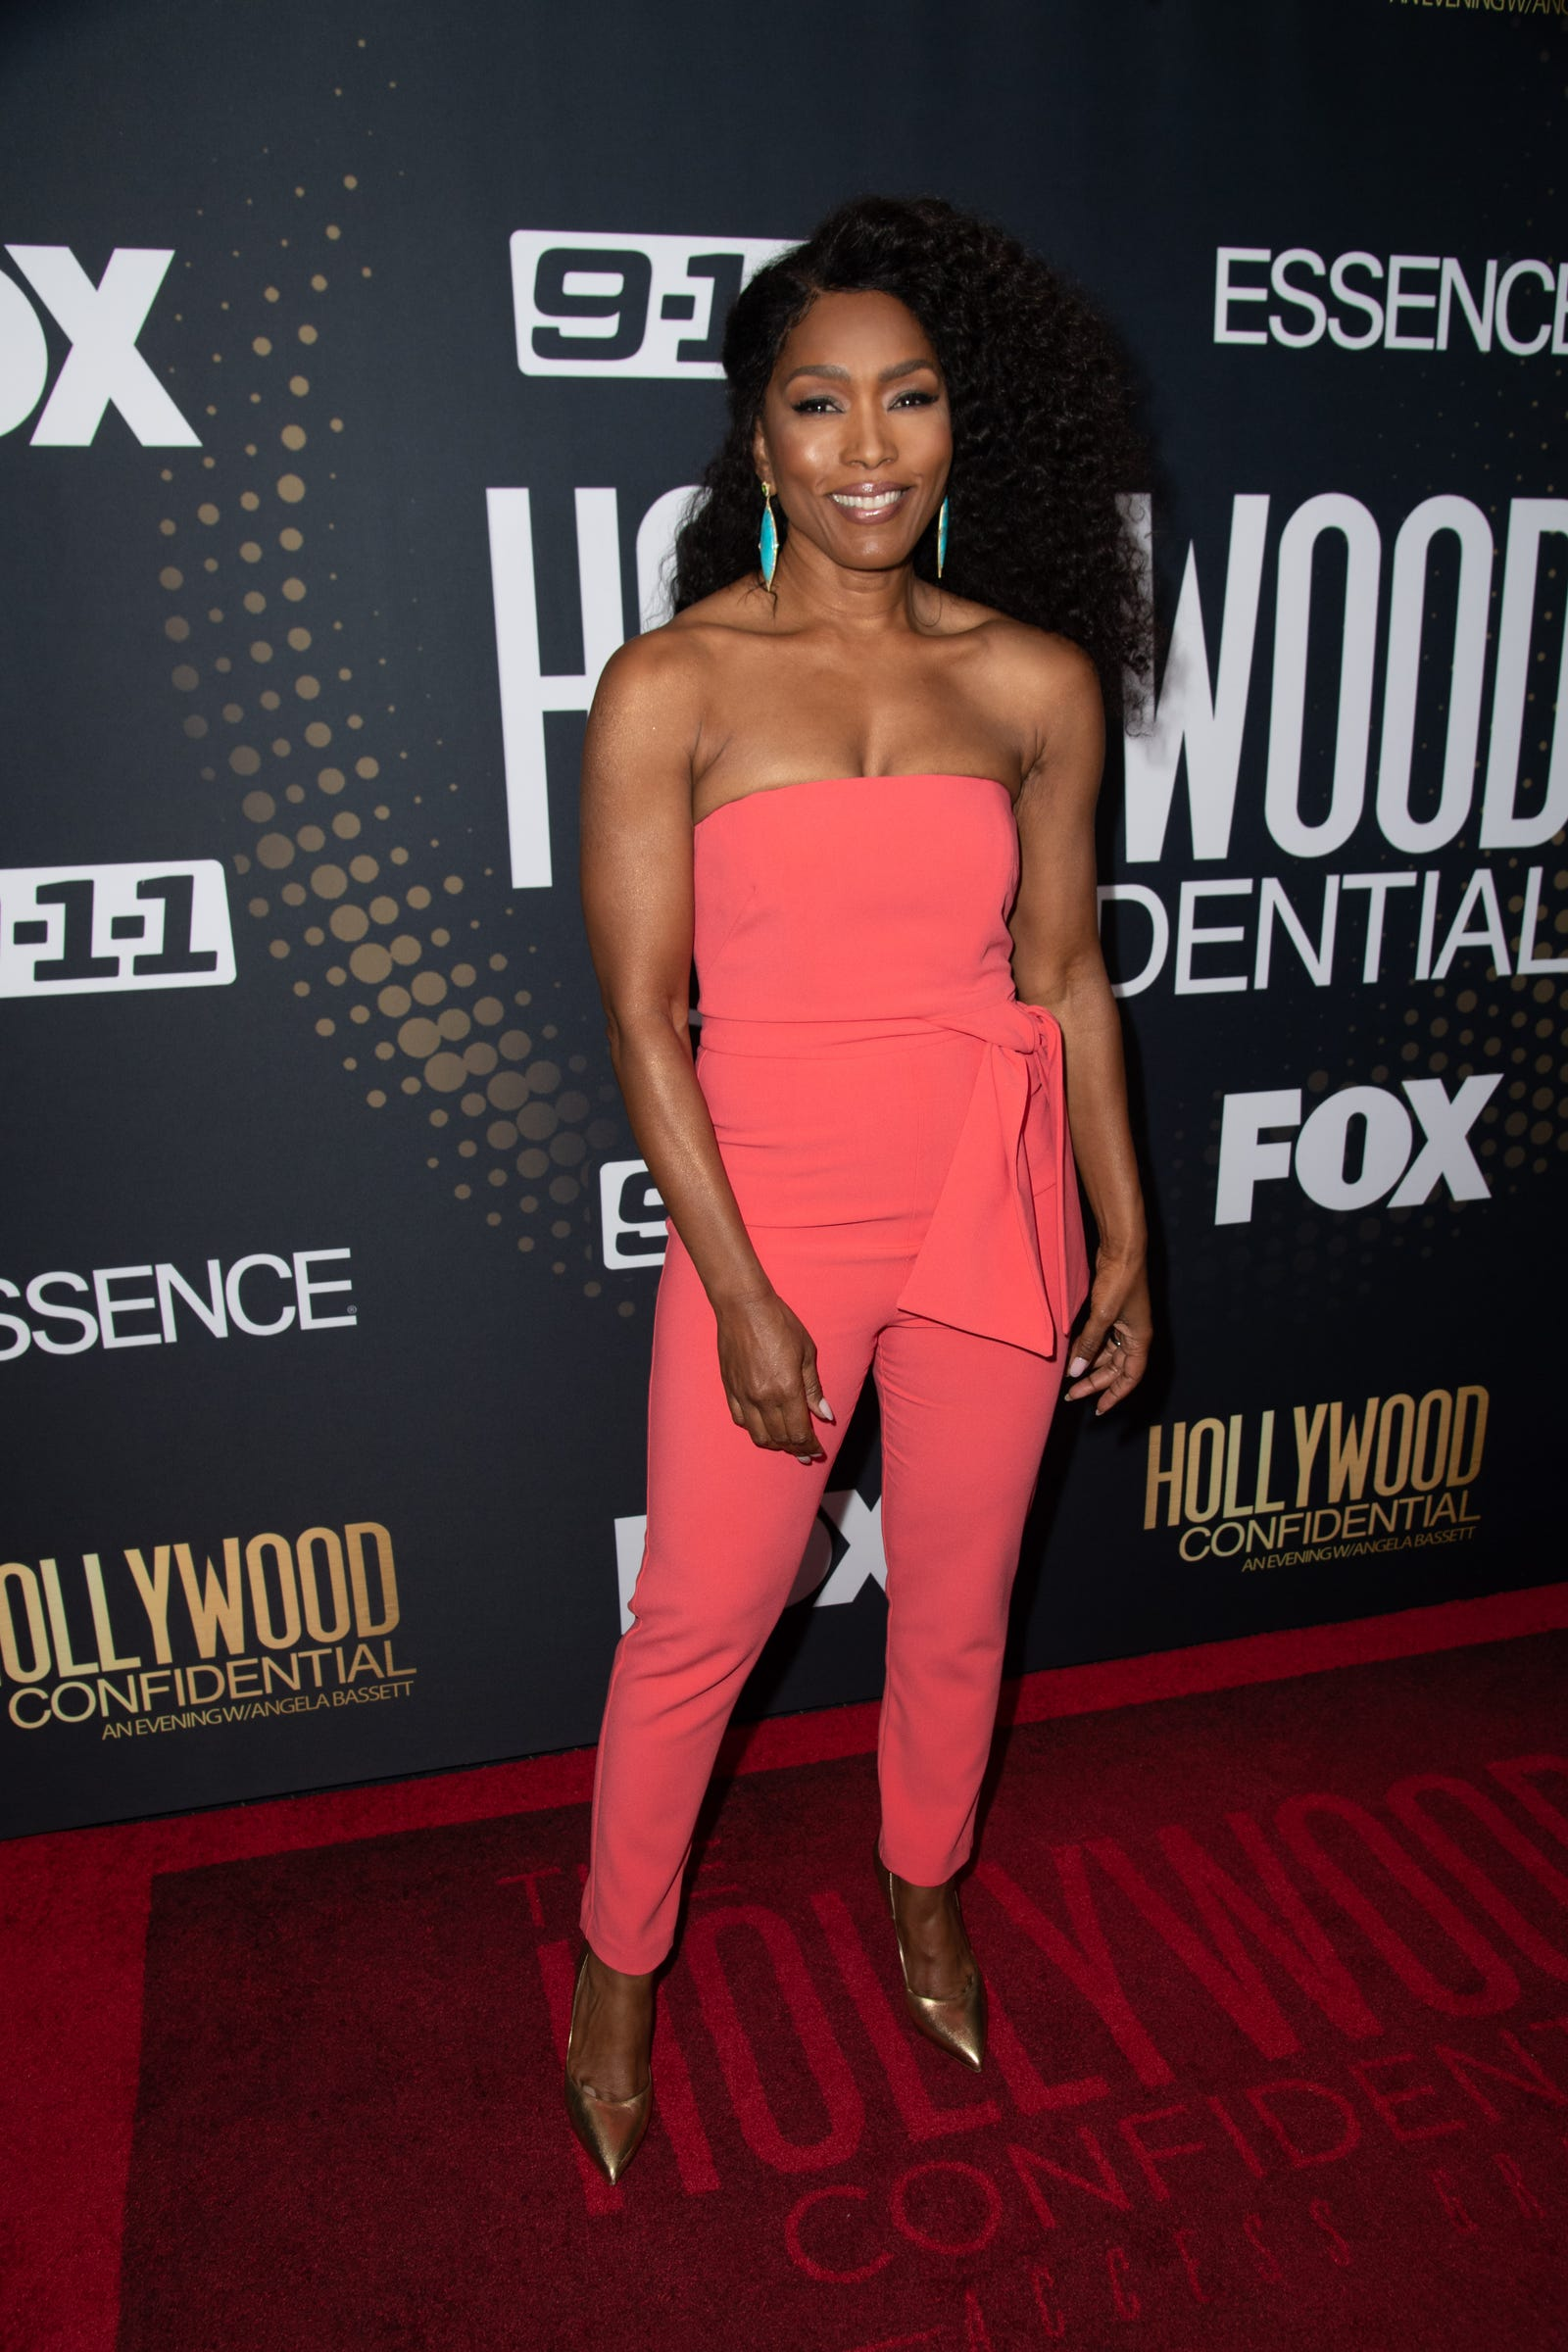 Angela Bassett at Essence Magazine And Hollywood Confidential Present 'An Evening With Angela Bassett' on October 8, 2018 in Beverly Hills, California.